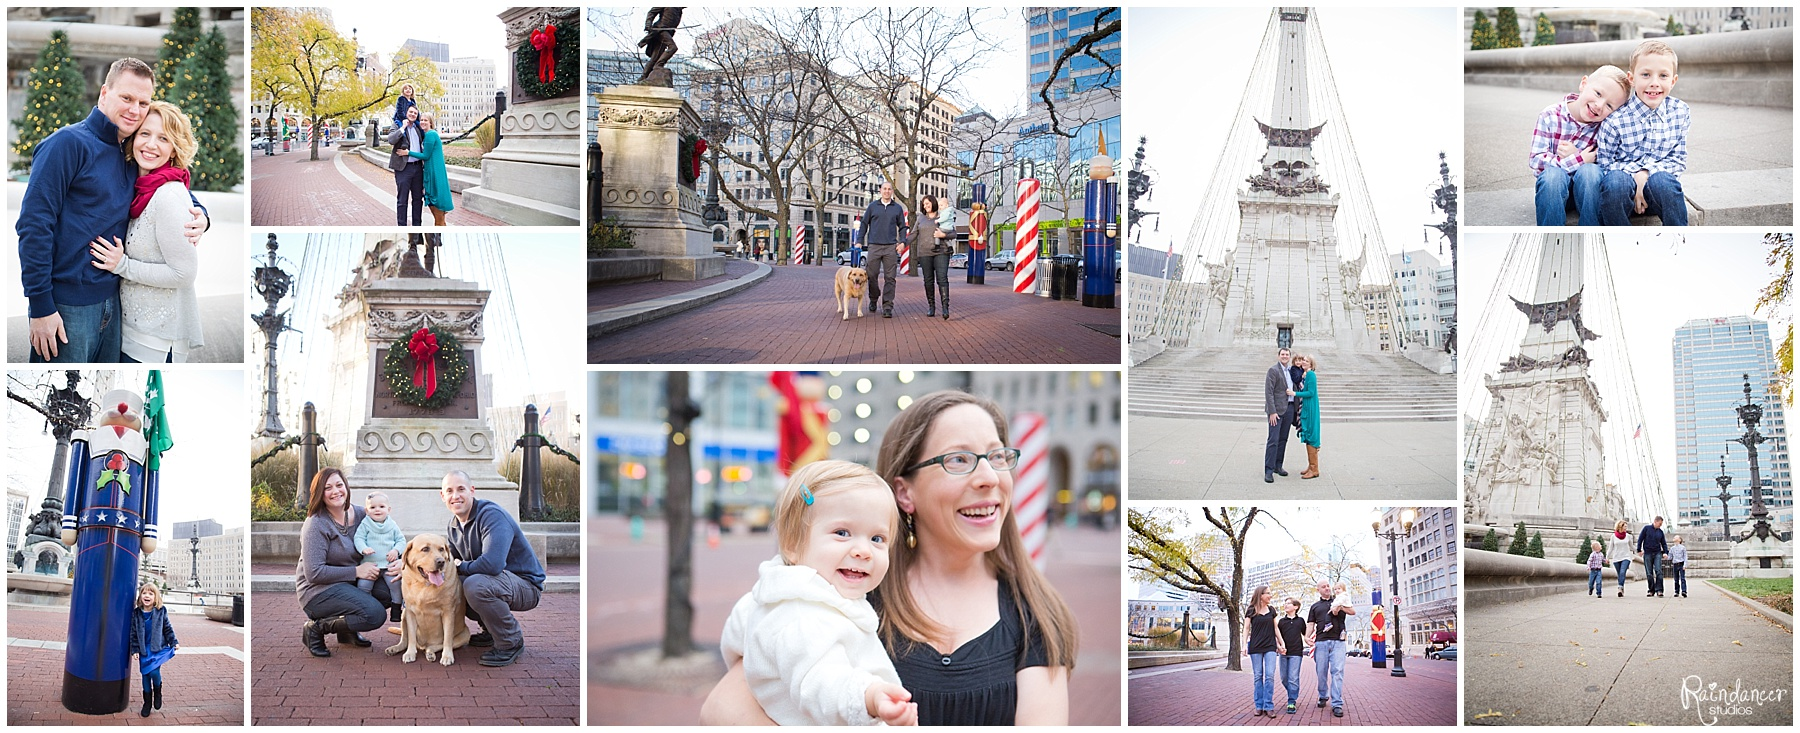 Indianapolis Family Photographer, Indianapolis Holiday Mini Sessions, Indianapolis Christmas Mini Sessions, Indianapolis Christmas photos